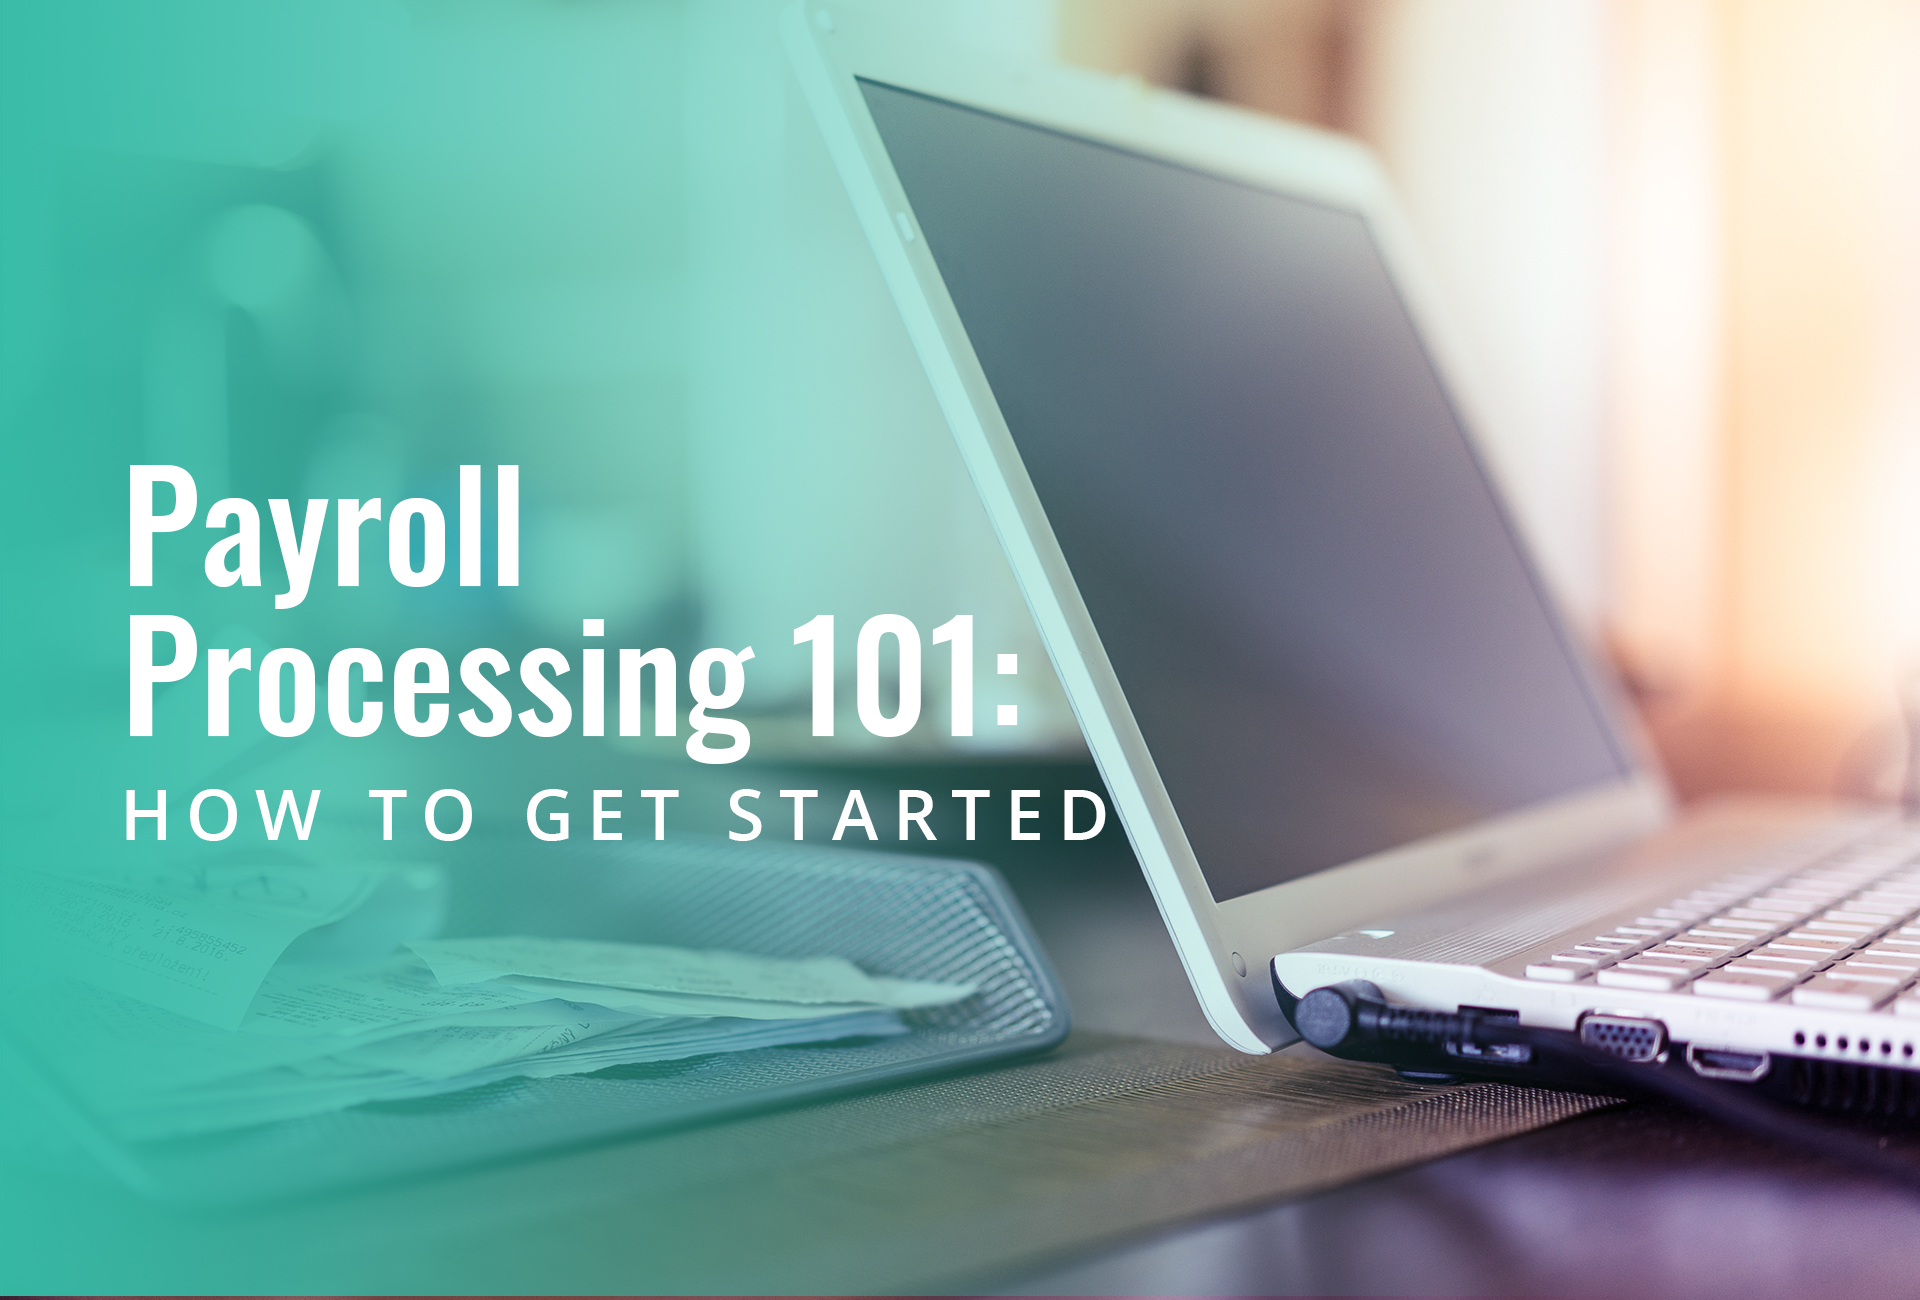 Payroll Processing 101: How to Get Started for Employers